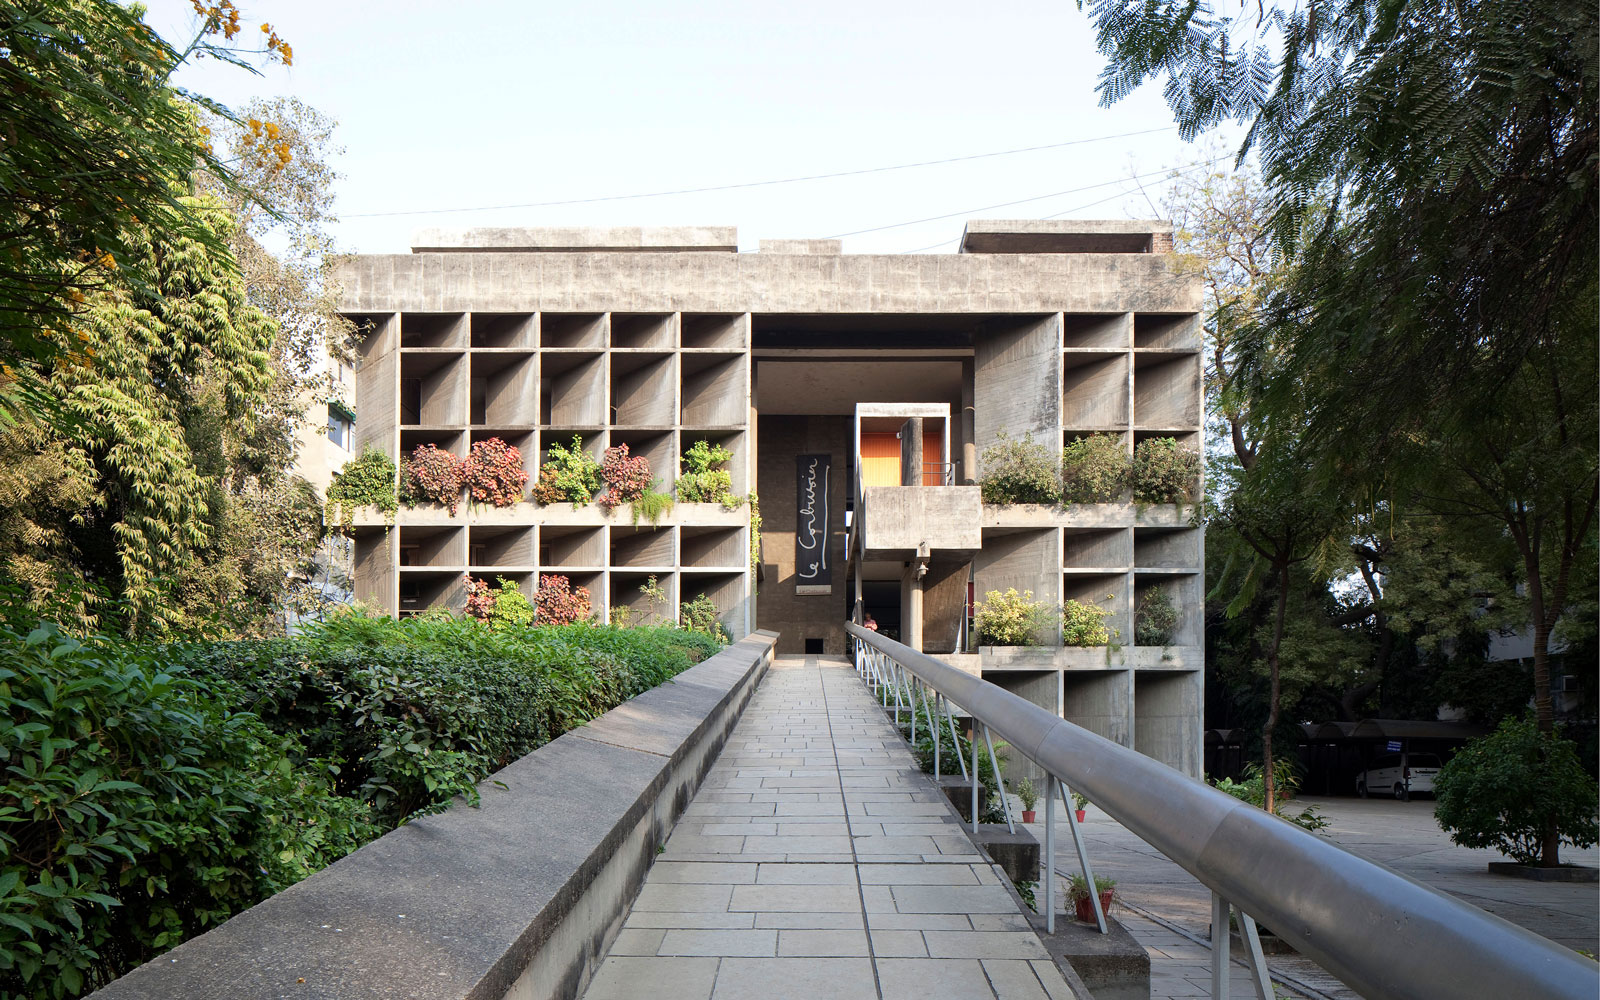 Architecture and Design in Ahmedabad, India